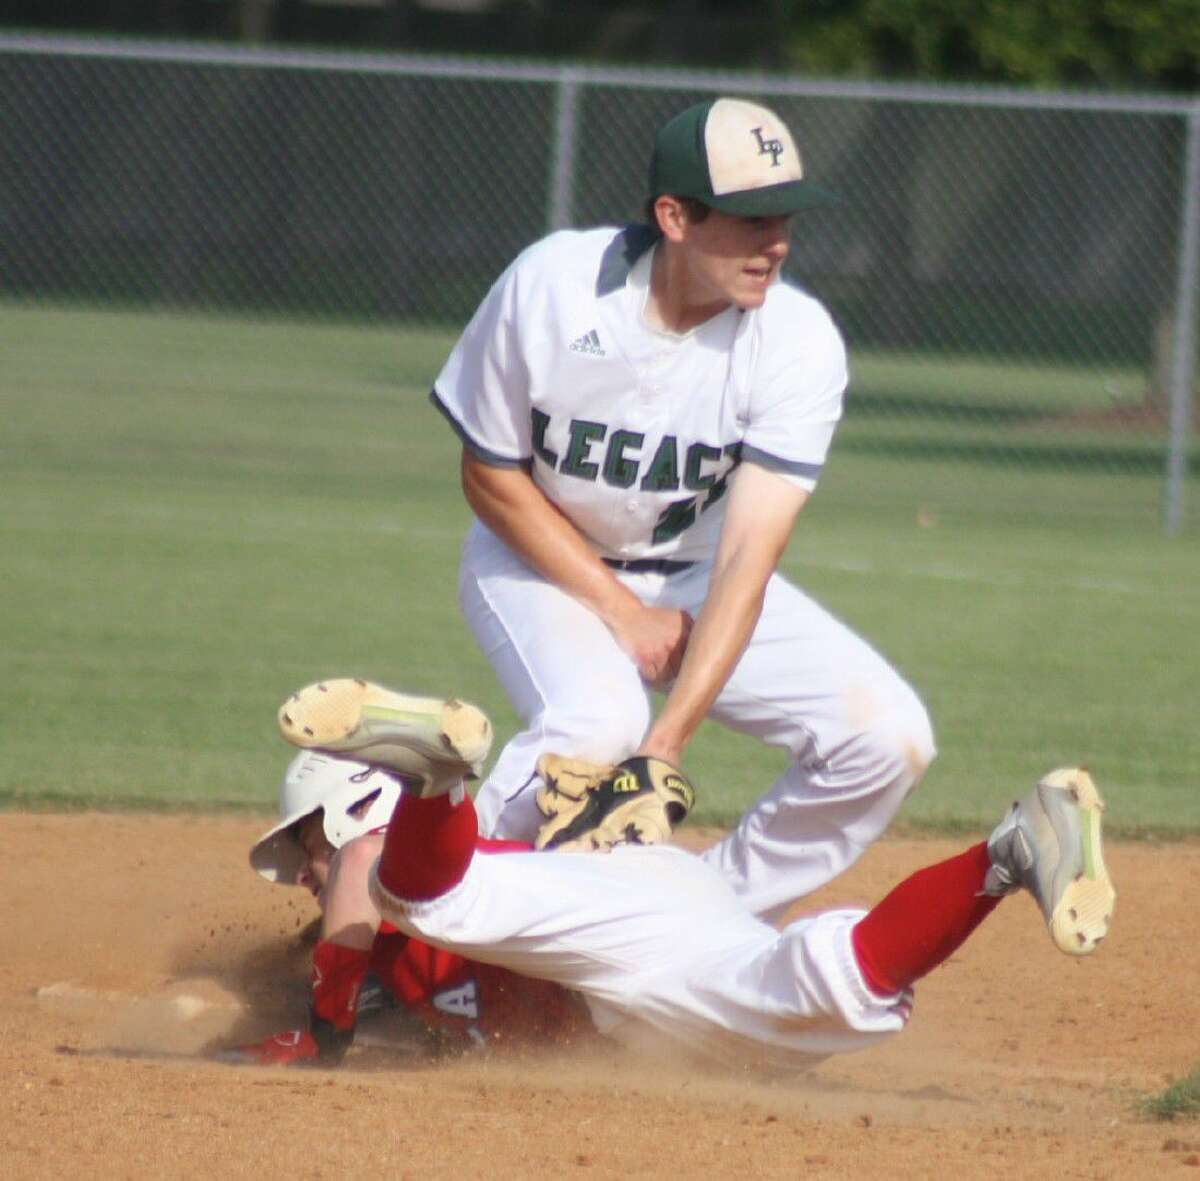 FBCA's Zach Dillard dives safely back into the second-base bag during fourth-inning action Thursday. He later scored to make it 4-0.